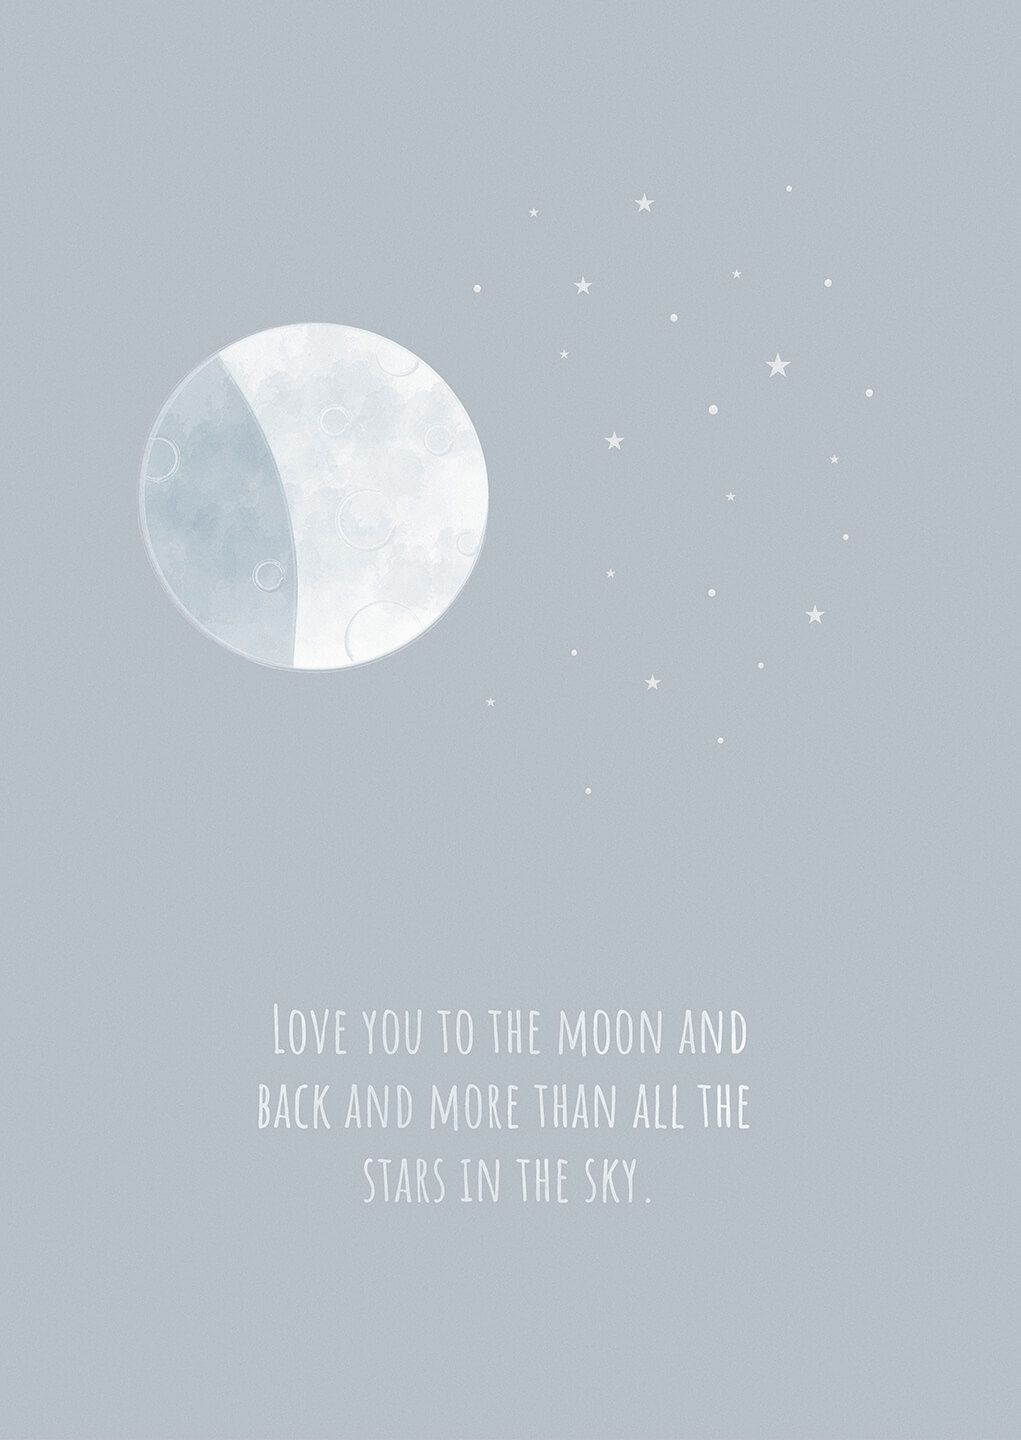 moon and back poster night sky quotes